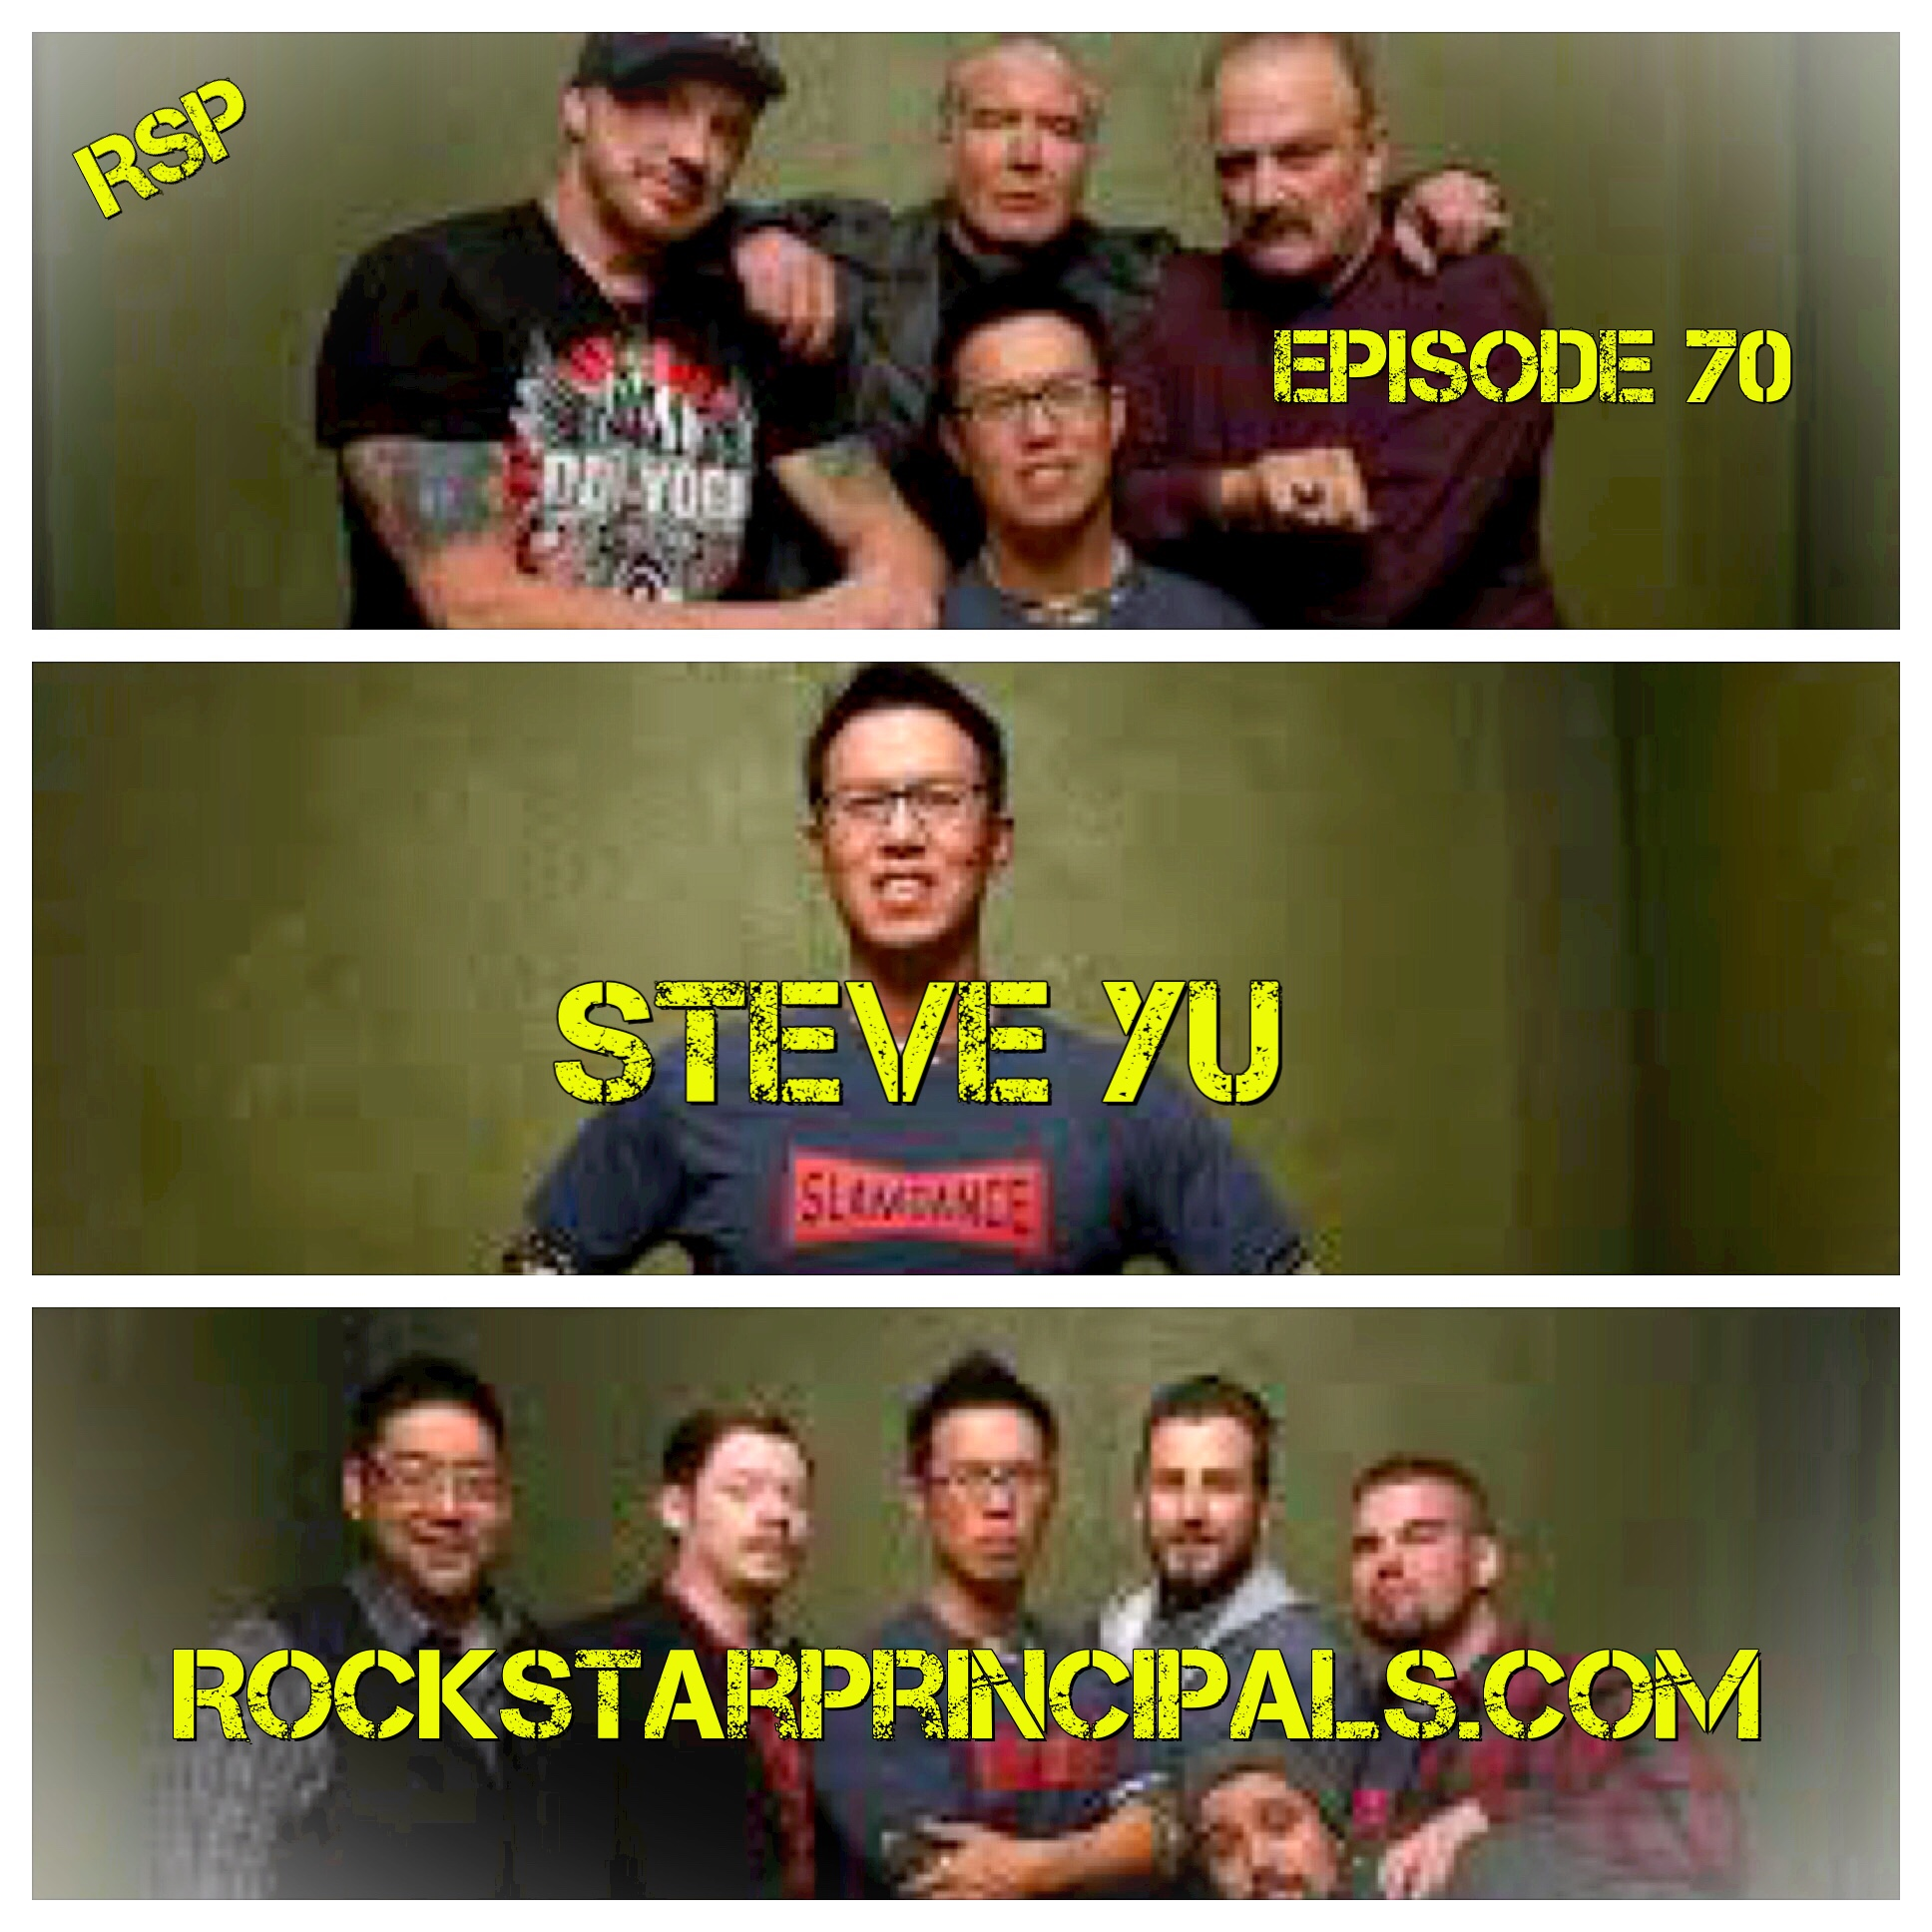 Episode 70: The Rock Star Principals' Podcast (Interview with Director Steve Yu)